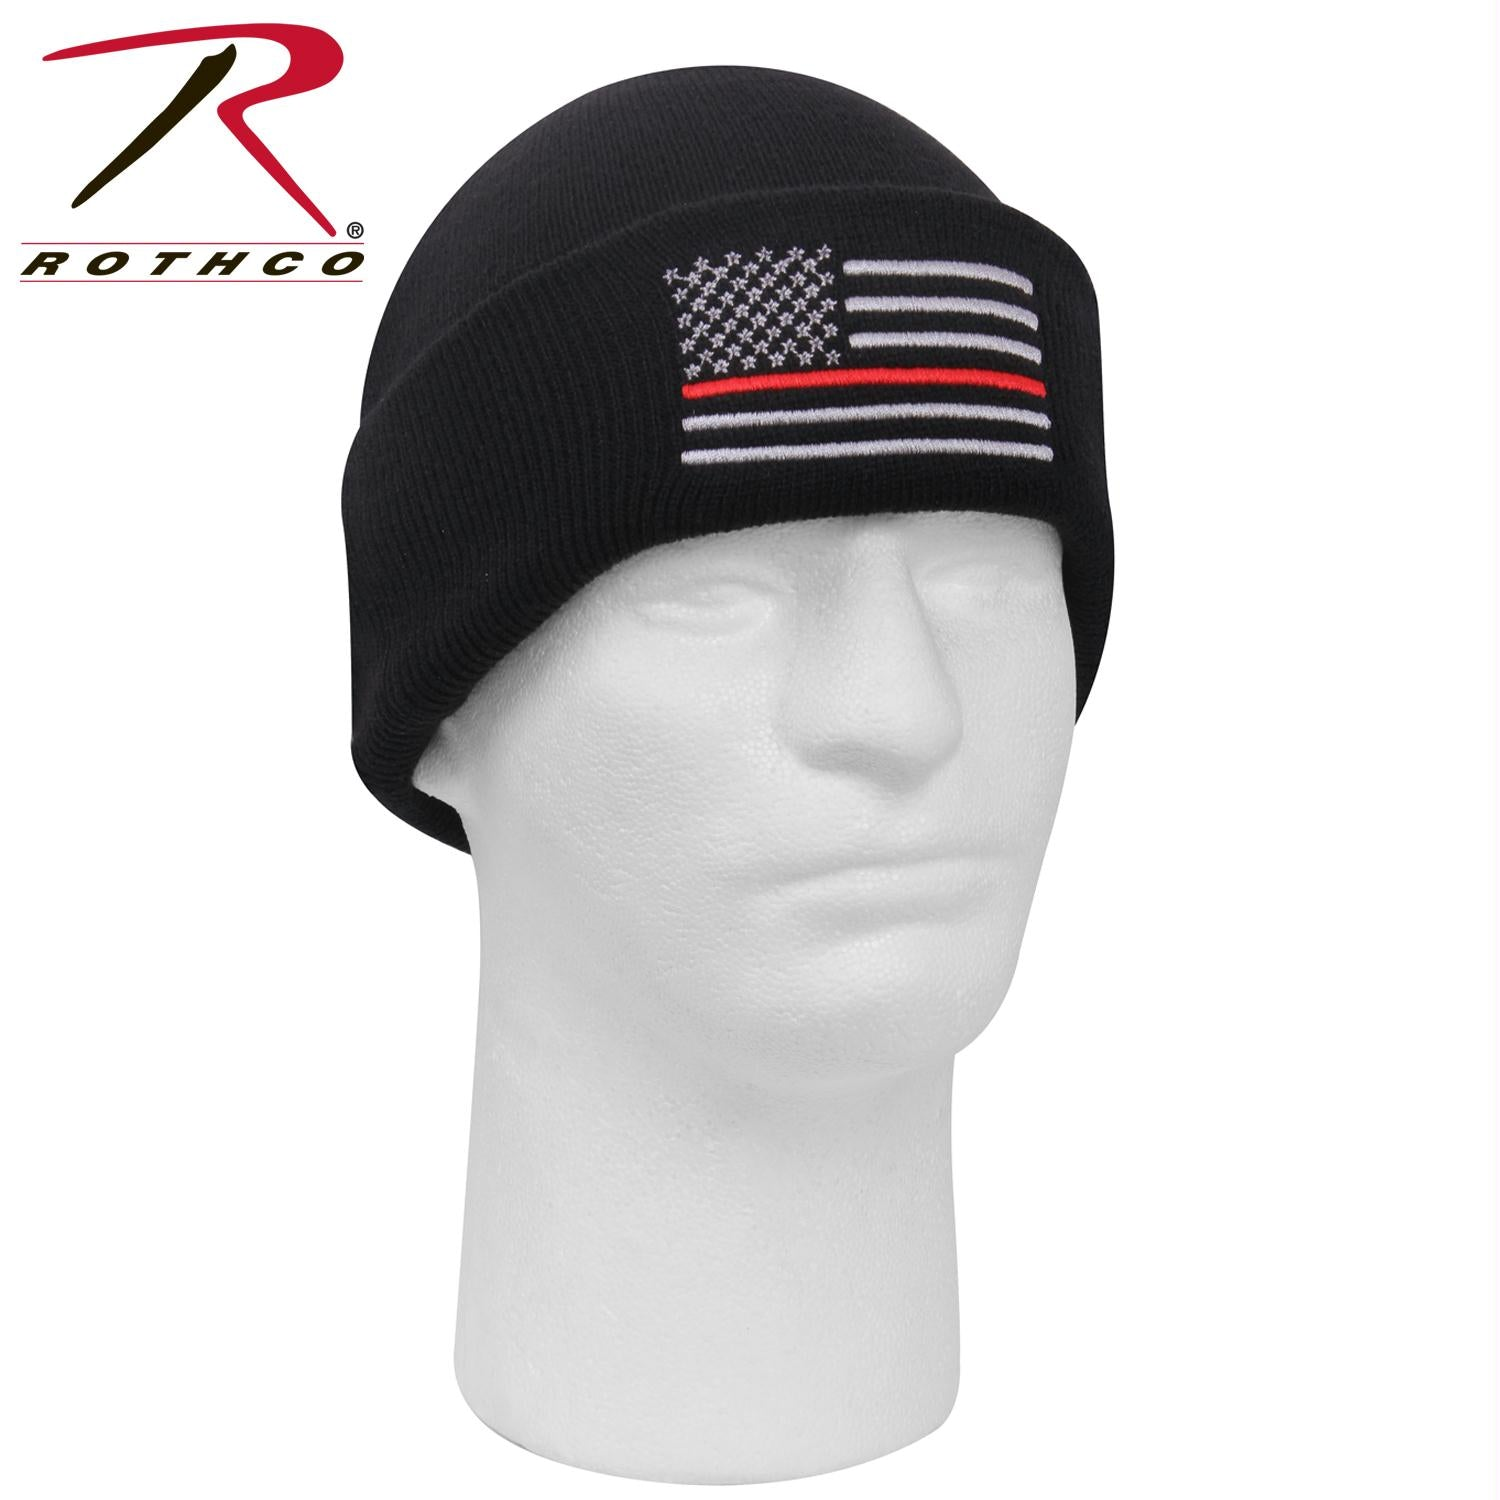 Rothco Deluxe Thin Red Line Watch Cap